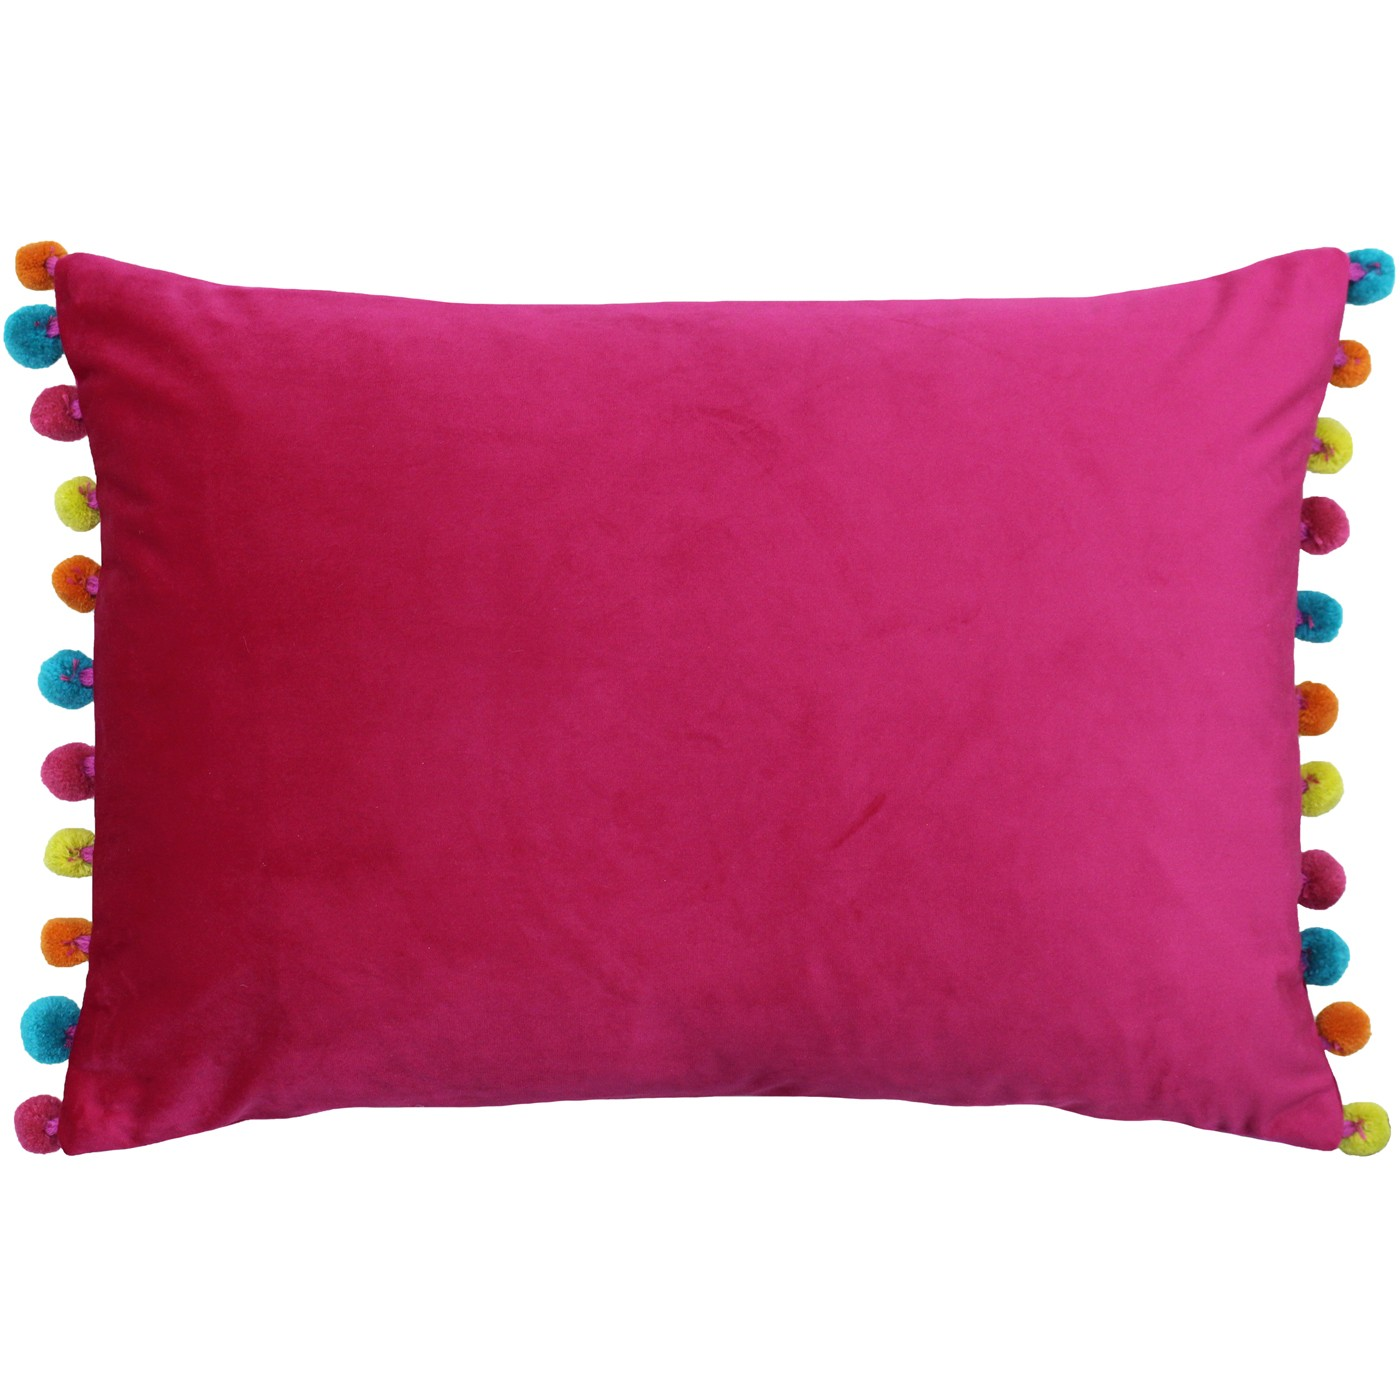 Fiesta Cushion, Pink Multi by Paoletti